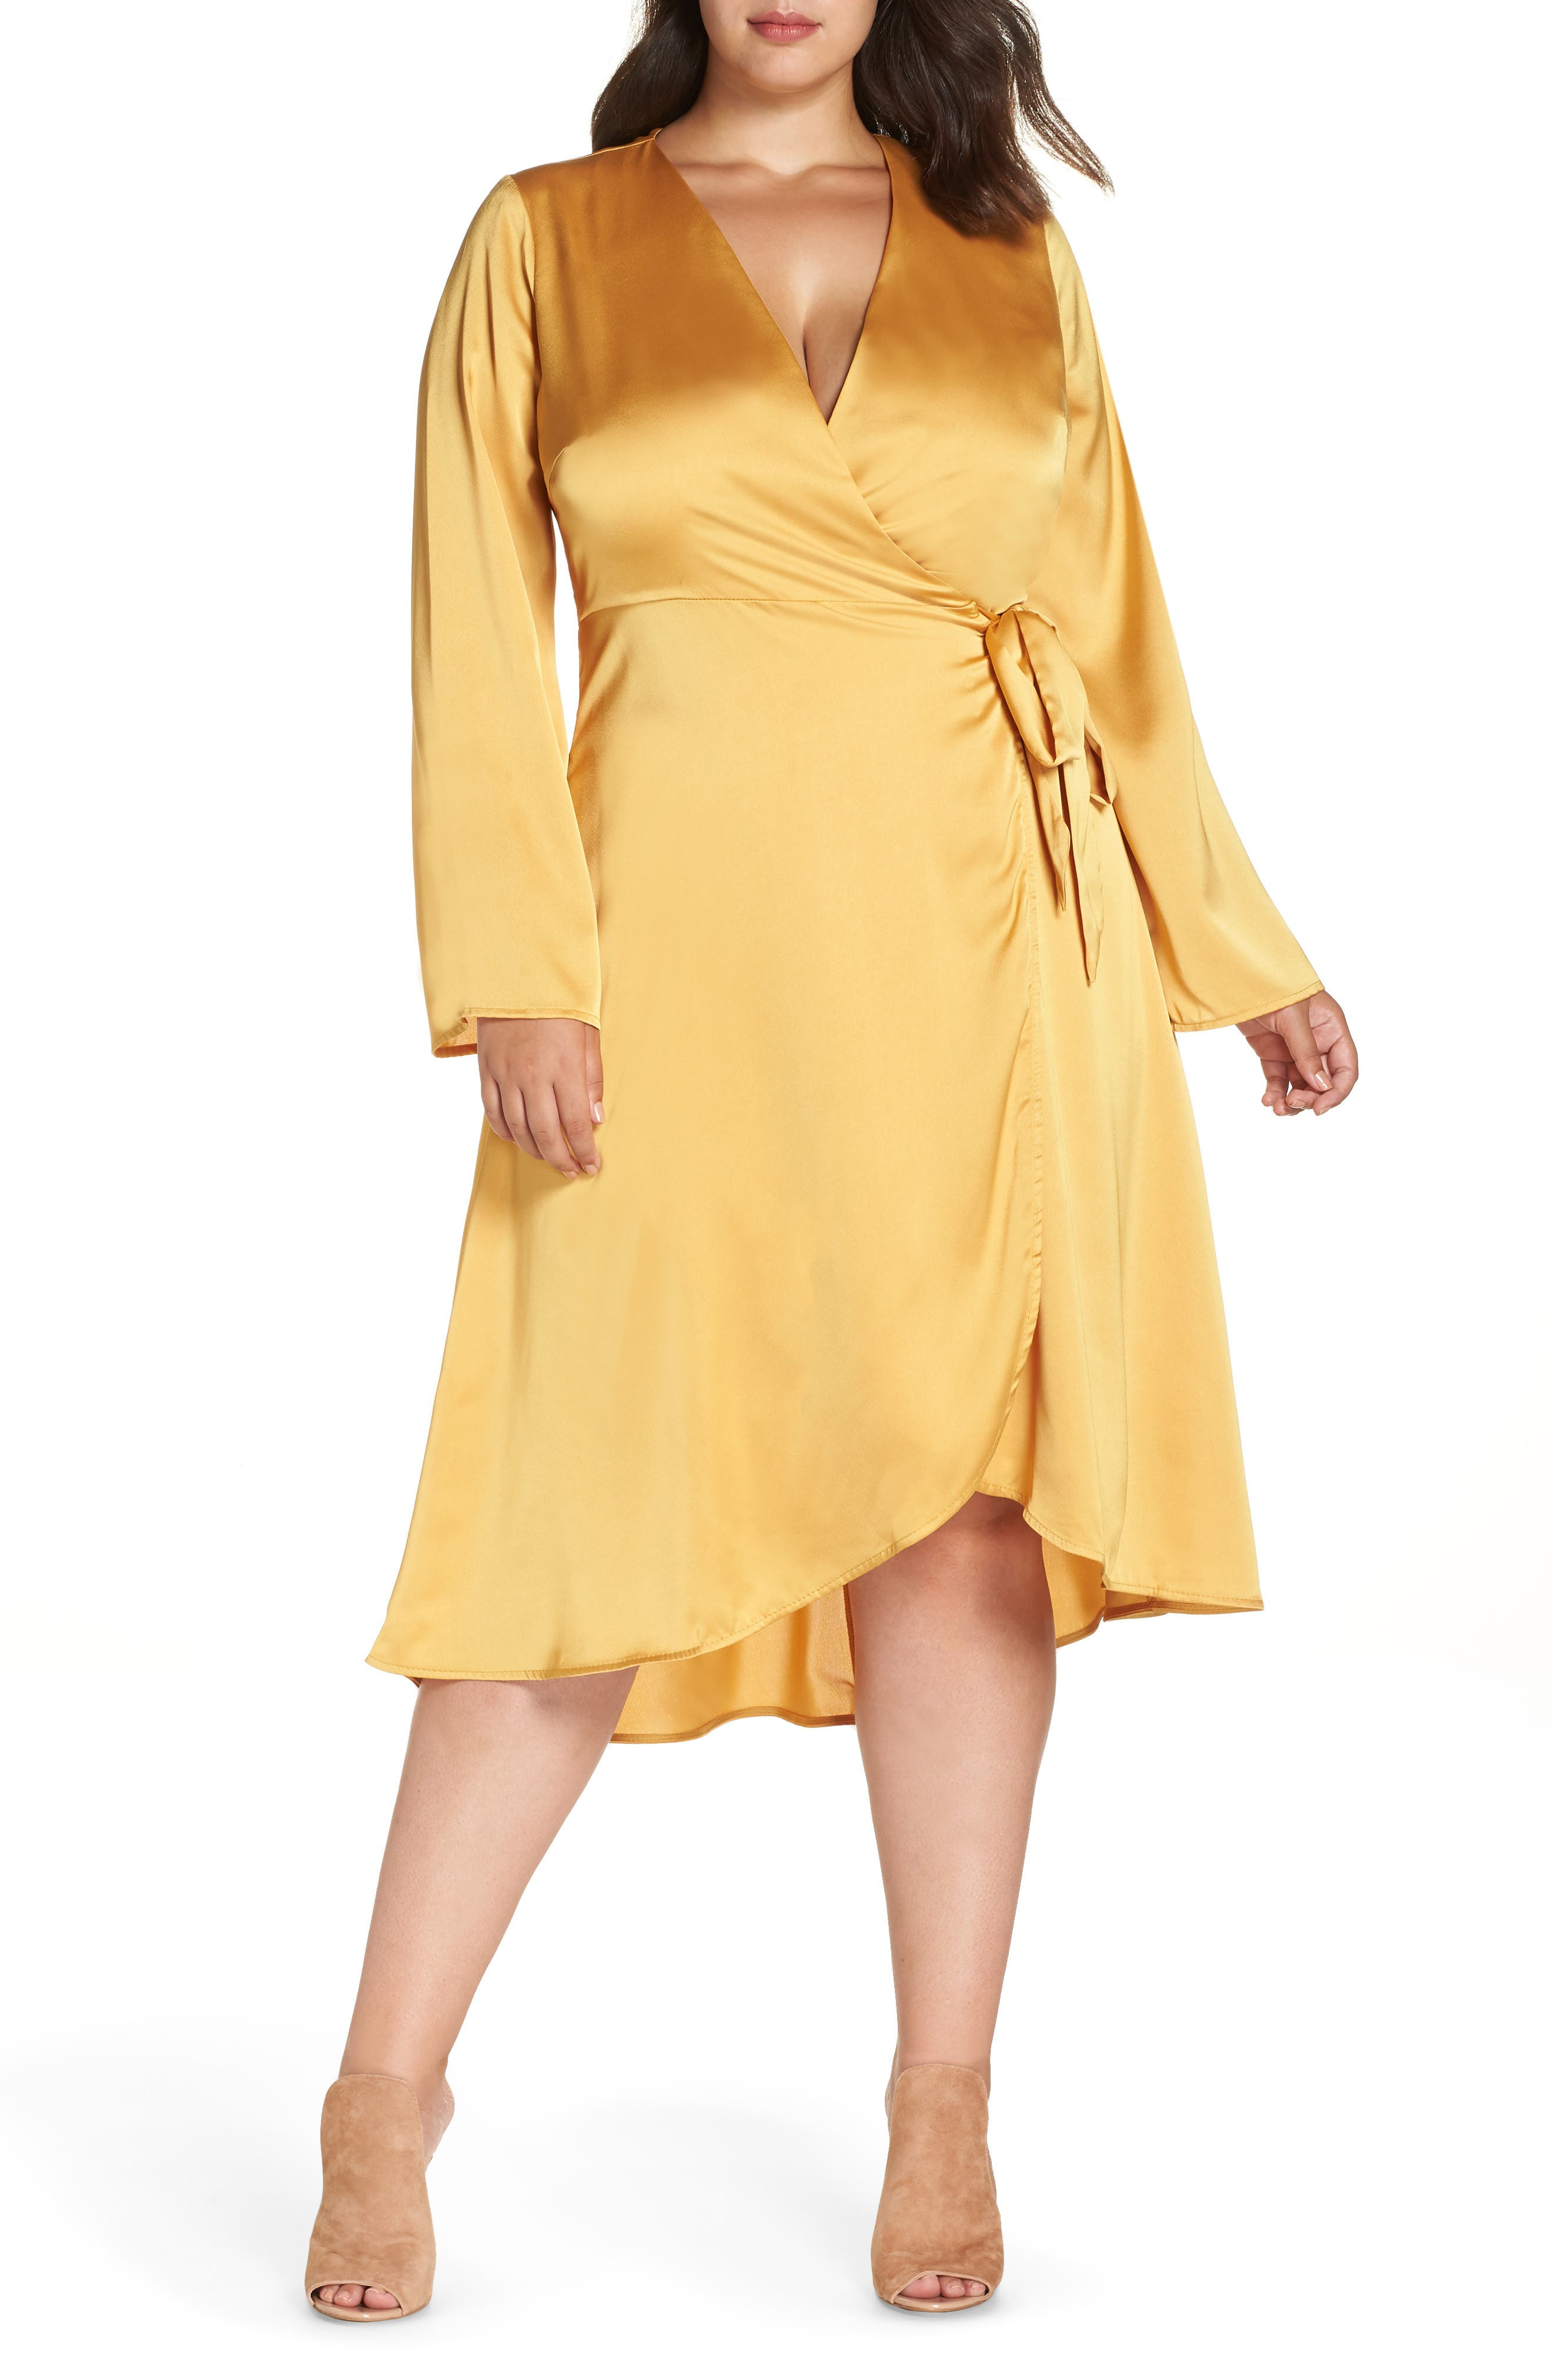 Yellow Cocktail Dresses with Flowing Sleeves